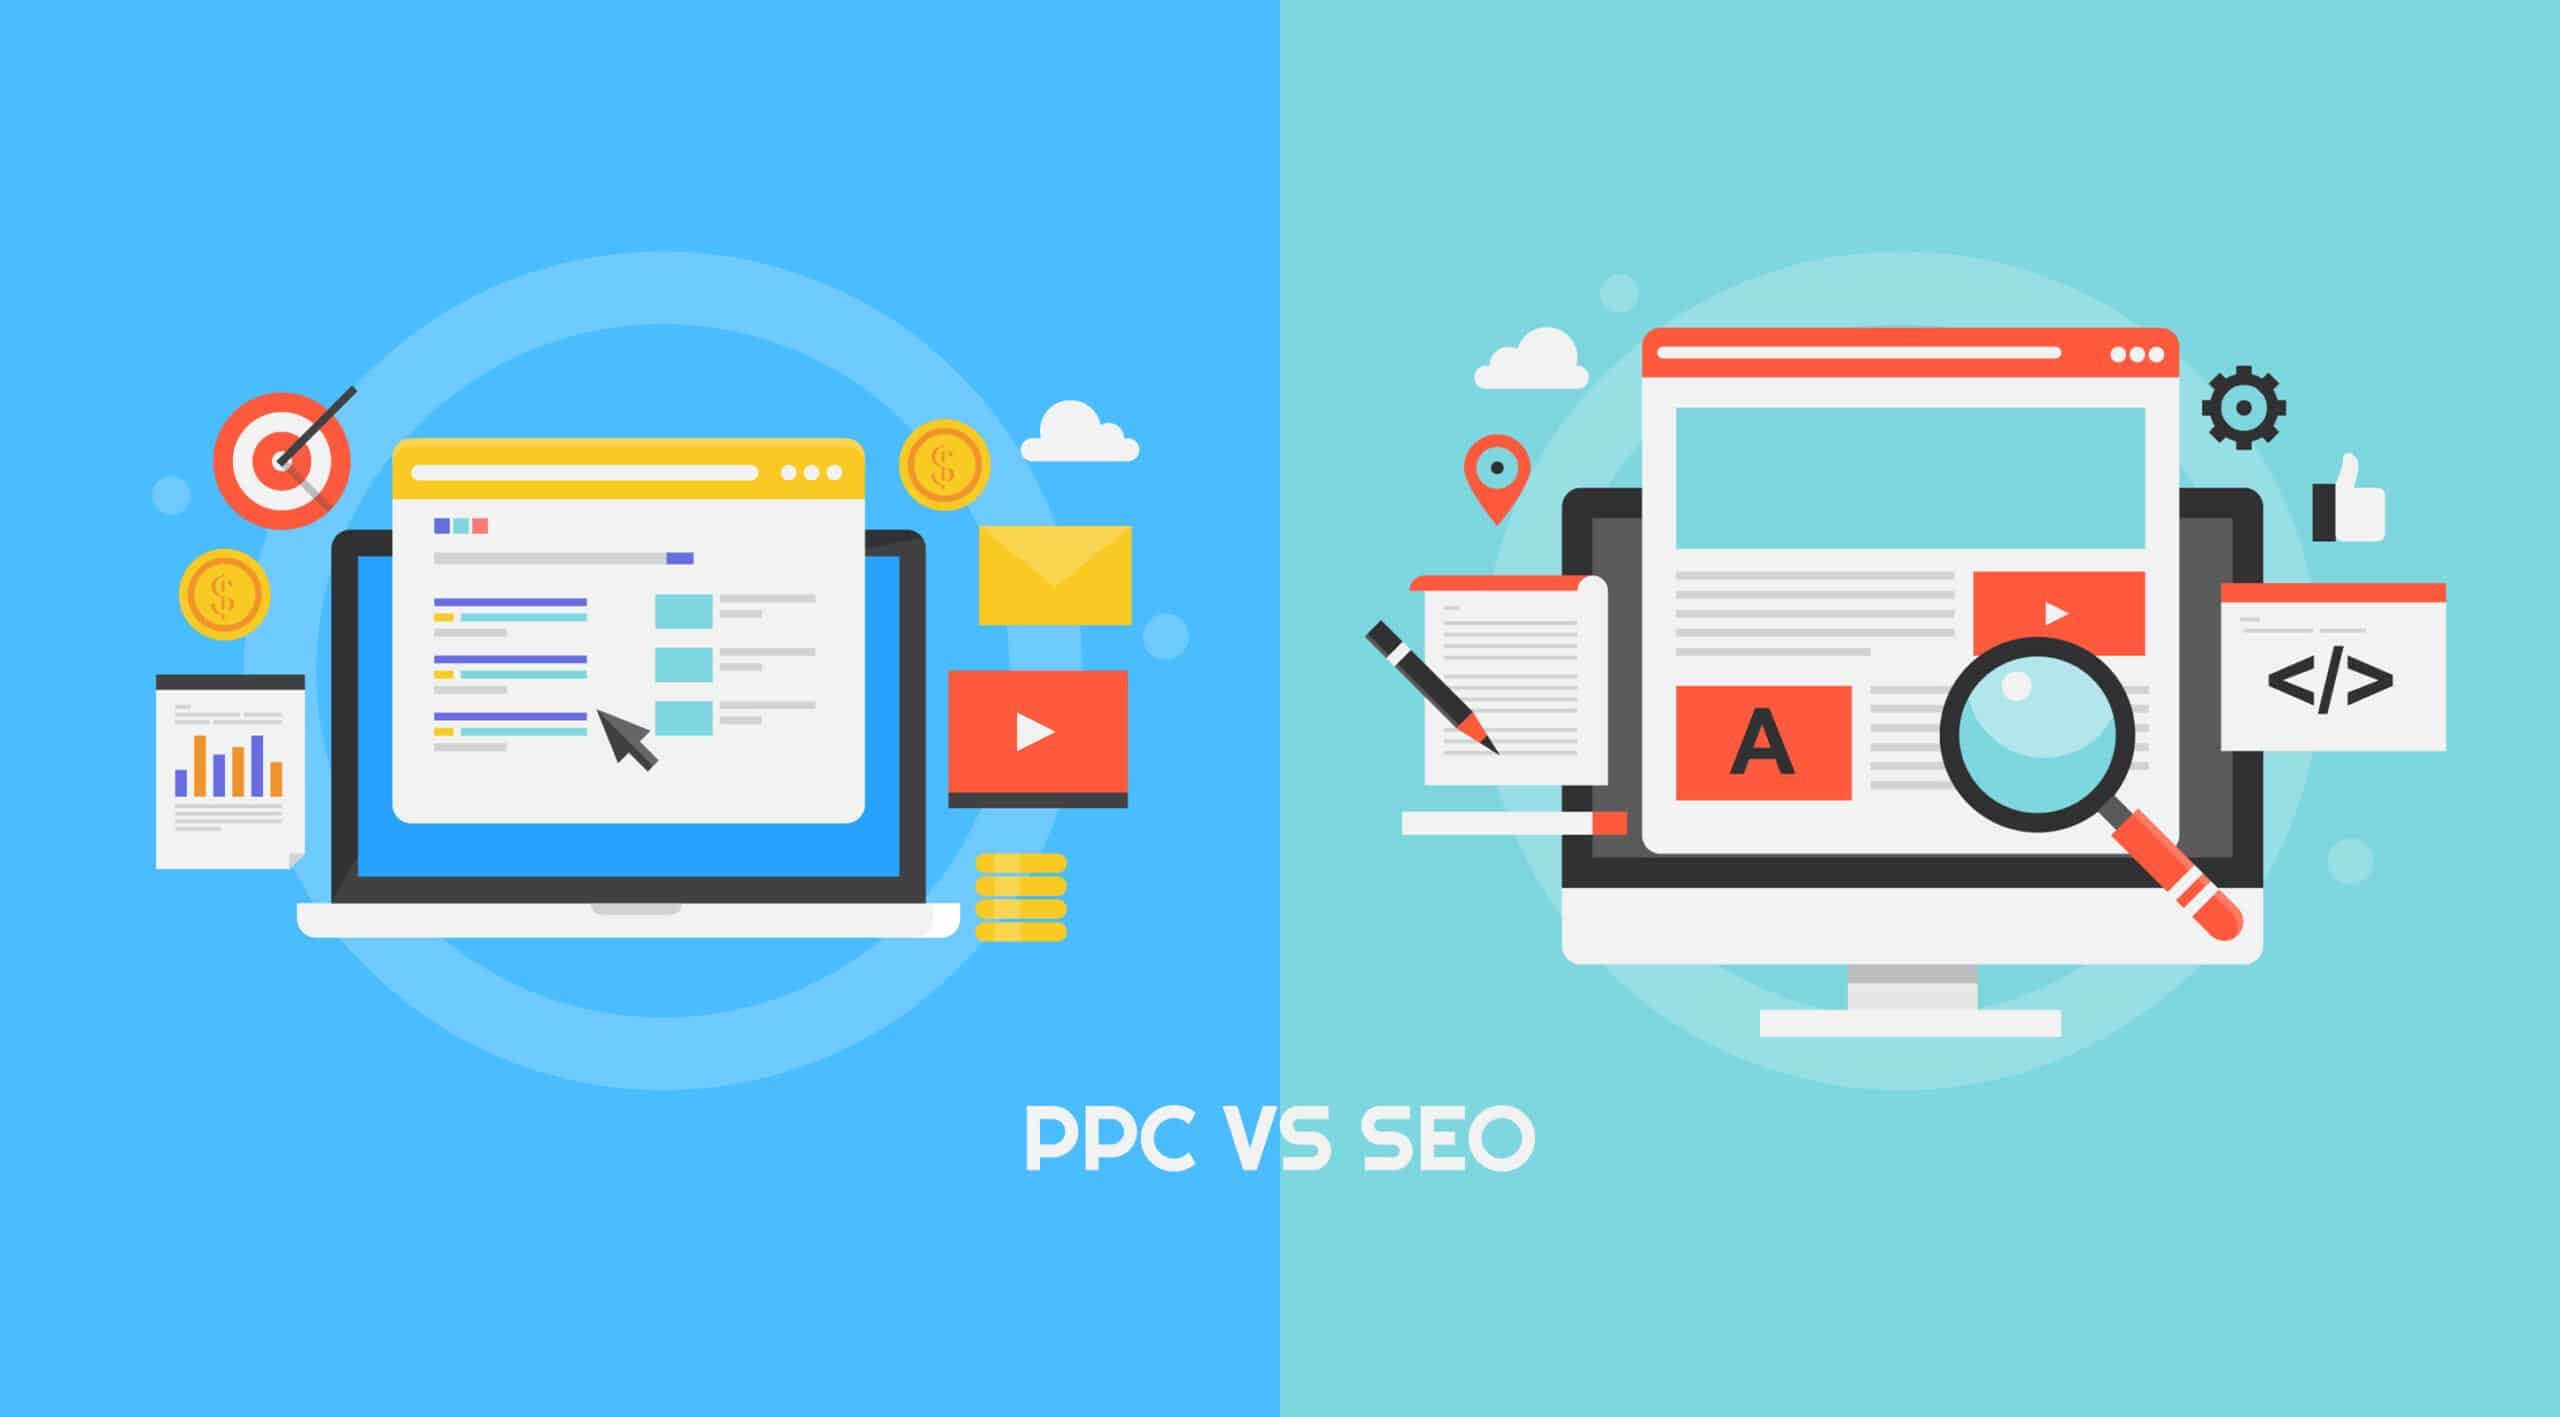 ppc vs seo which will benefit your business more